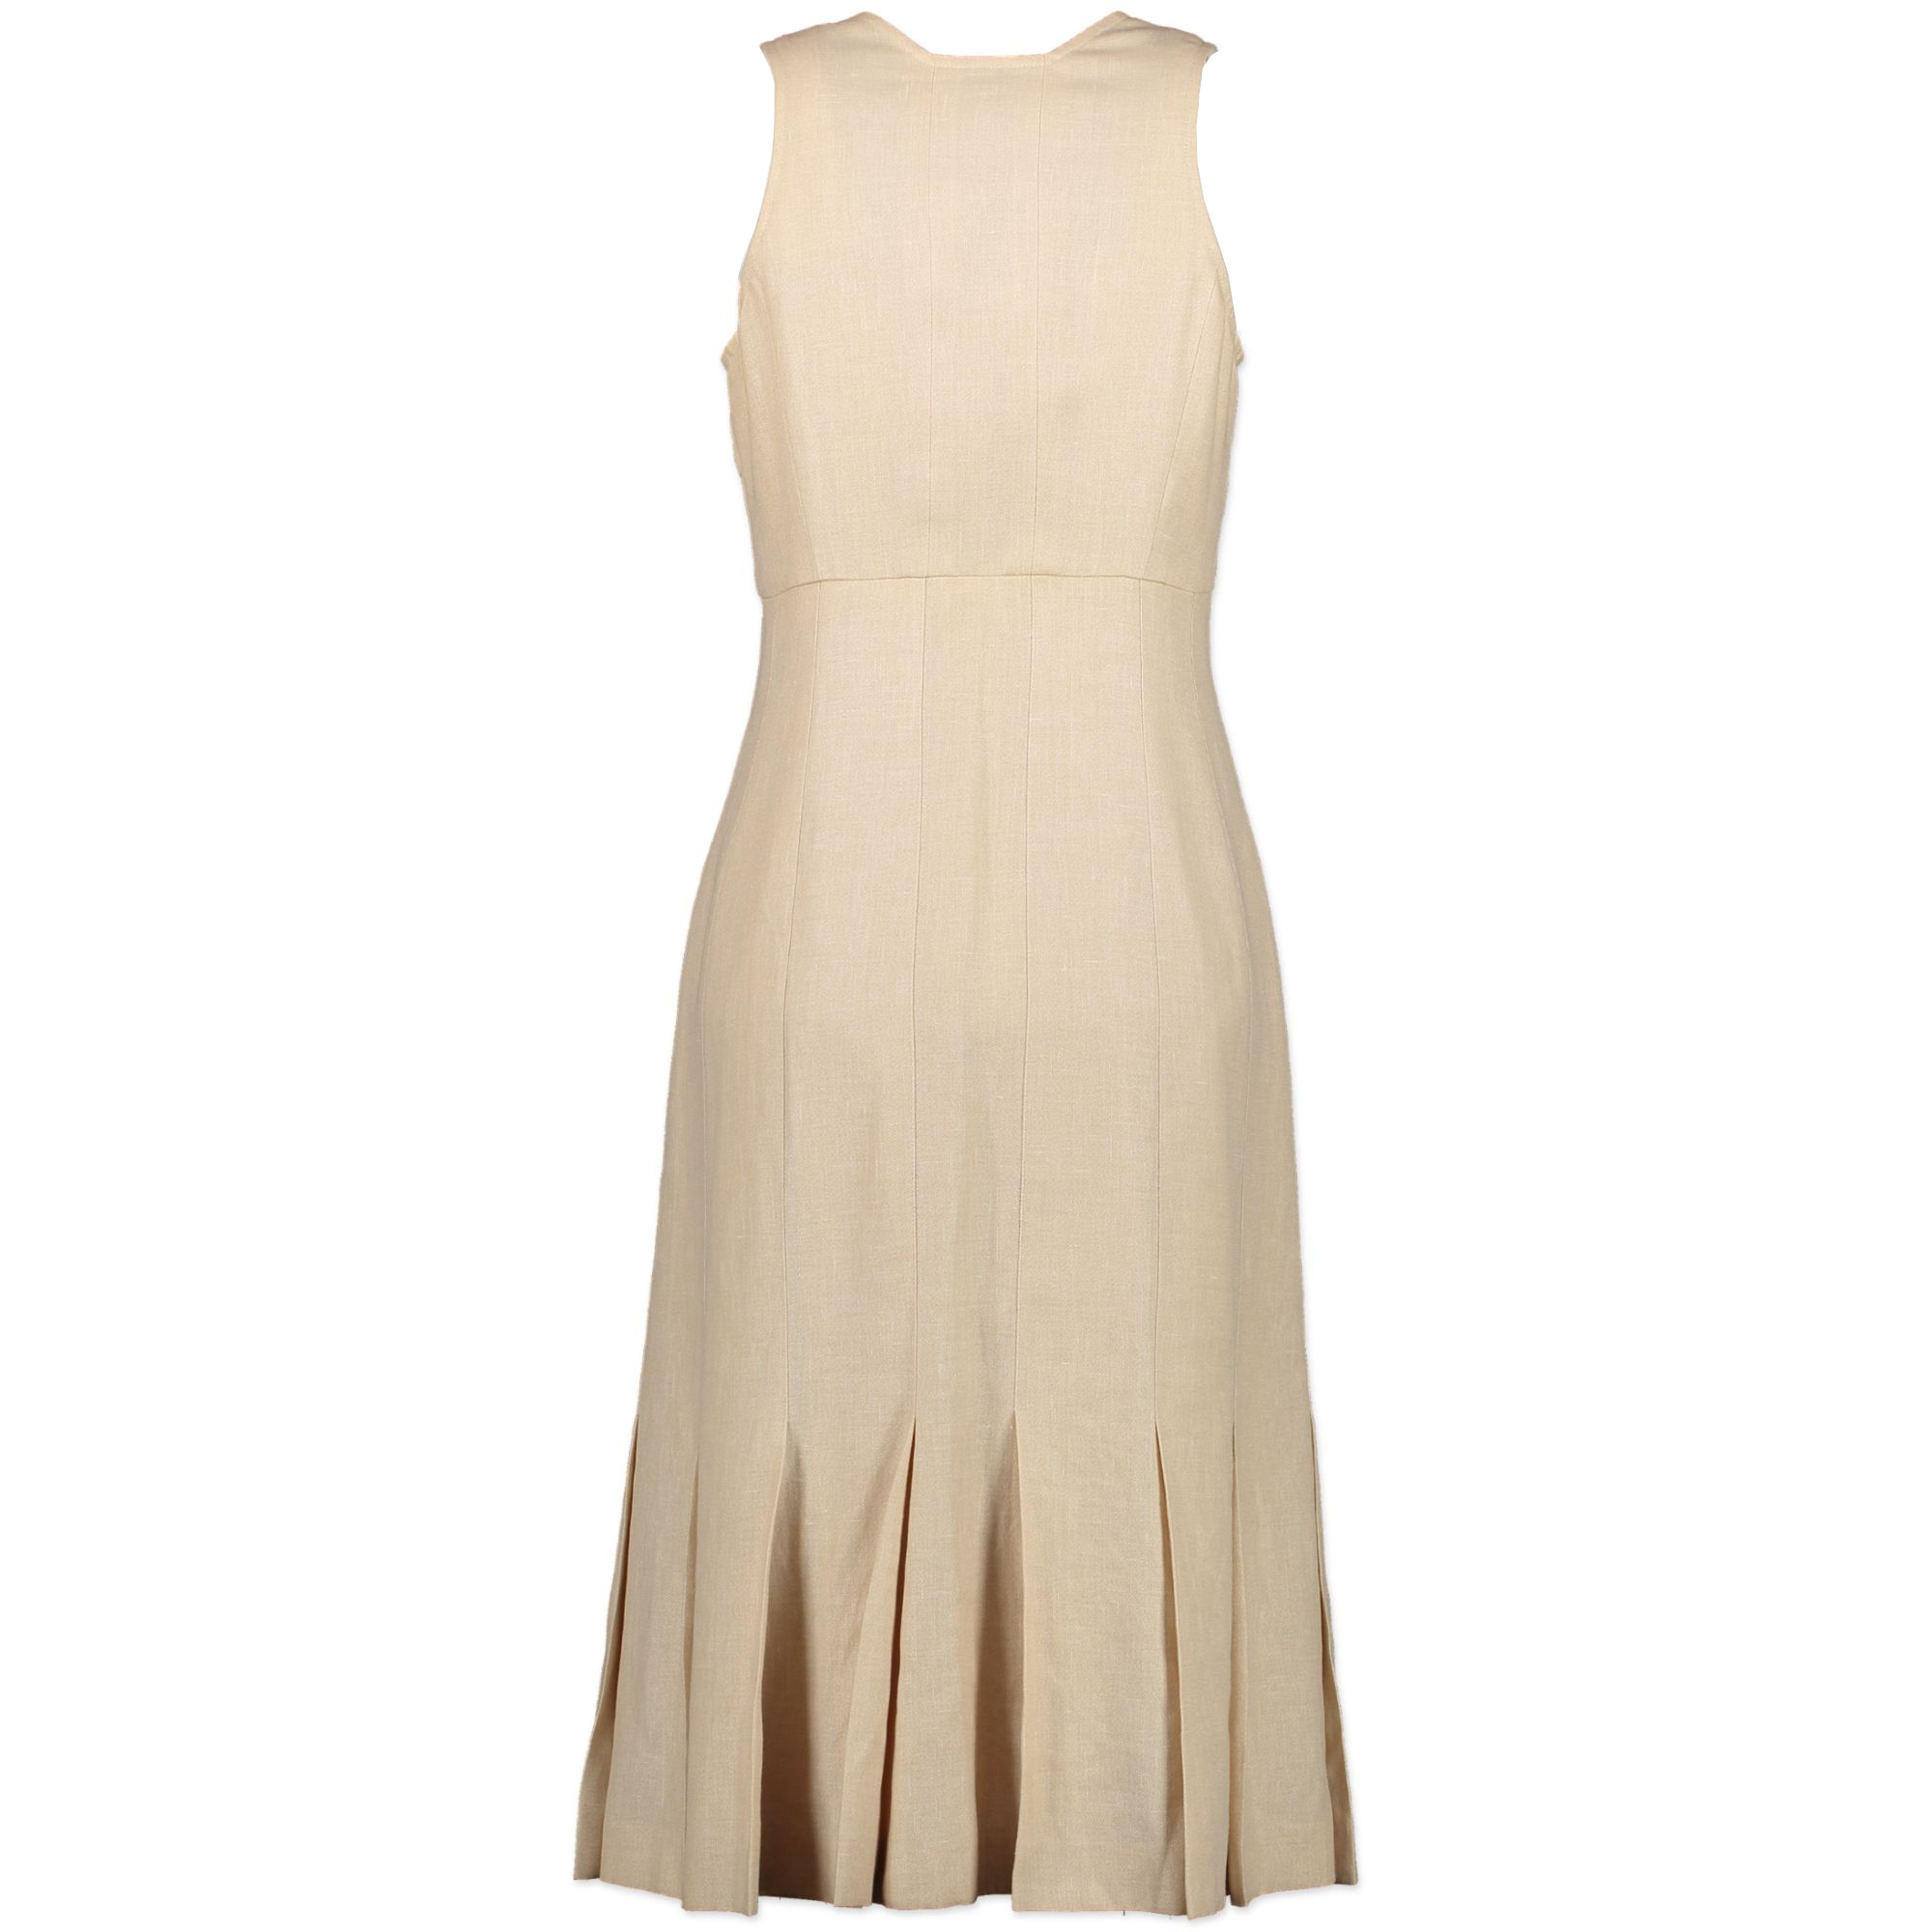 Chanel Sandy Beige Linen Dress - Size 36